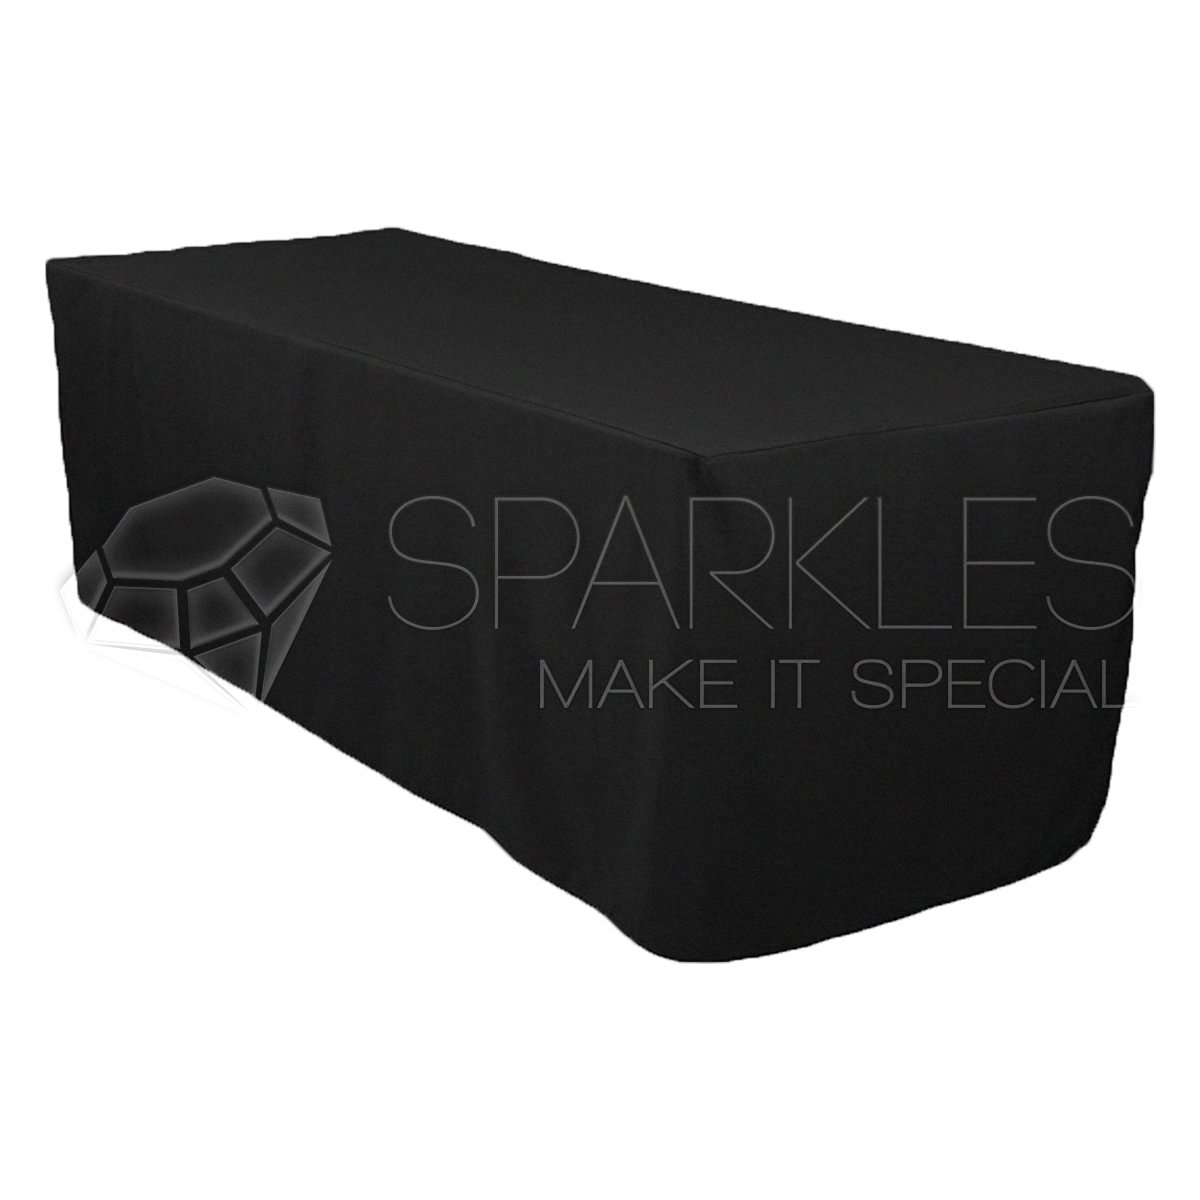 Sparkles Make It Special 10-pcs 8' ft Rectangular Fitted Polyester Cloth Fabric Linen Tablecloth - Wedding Reception Restaurant Banquet Party - Machine Washable - Black